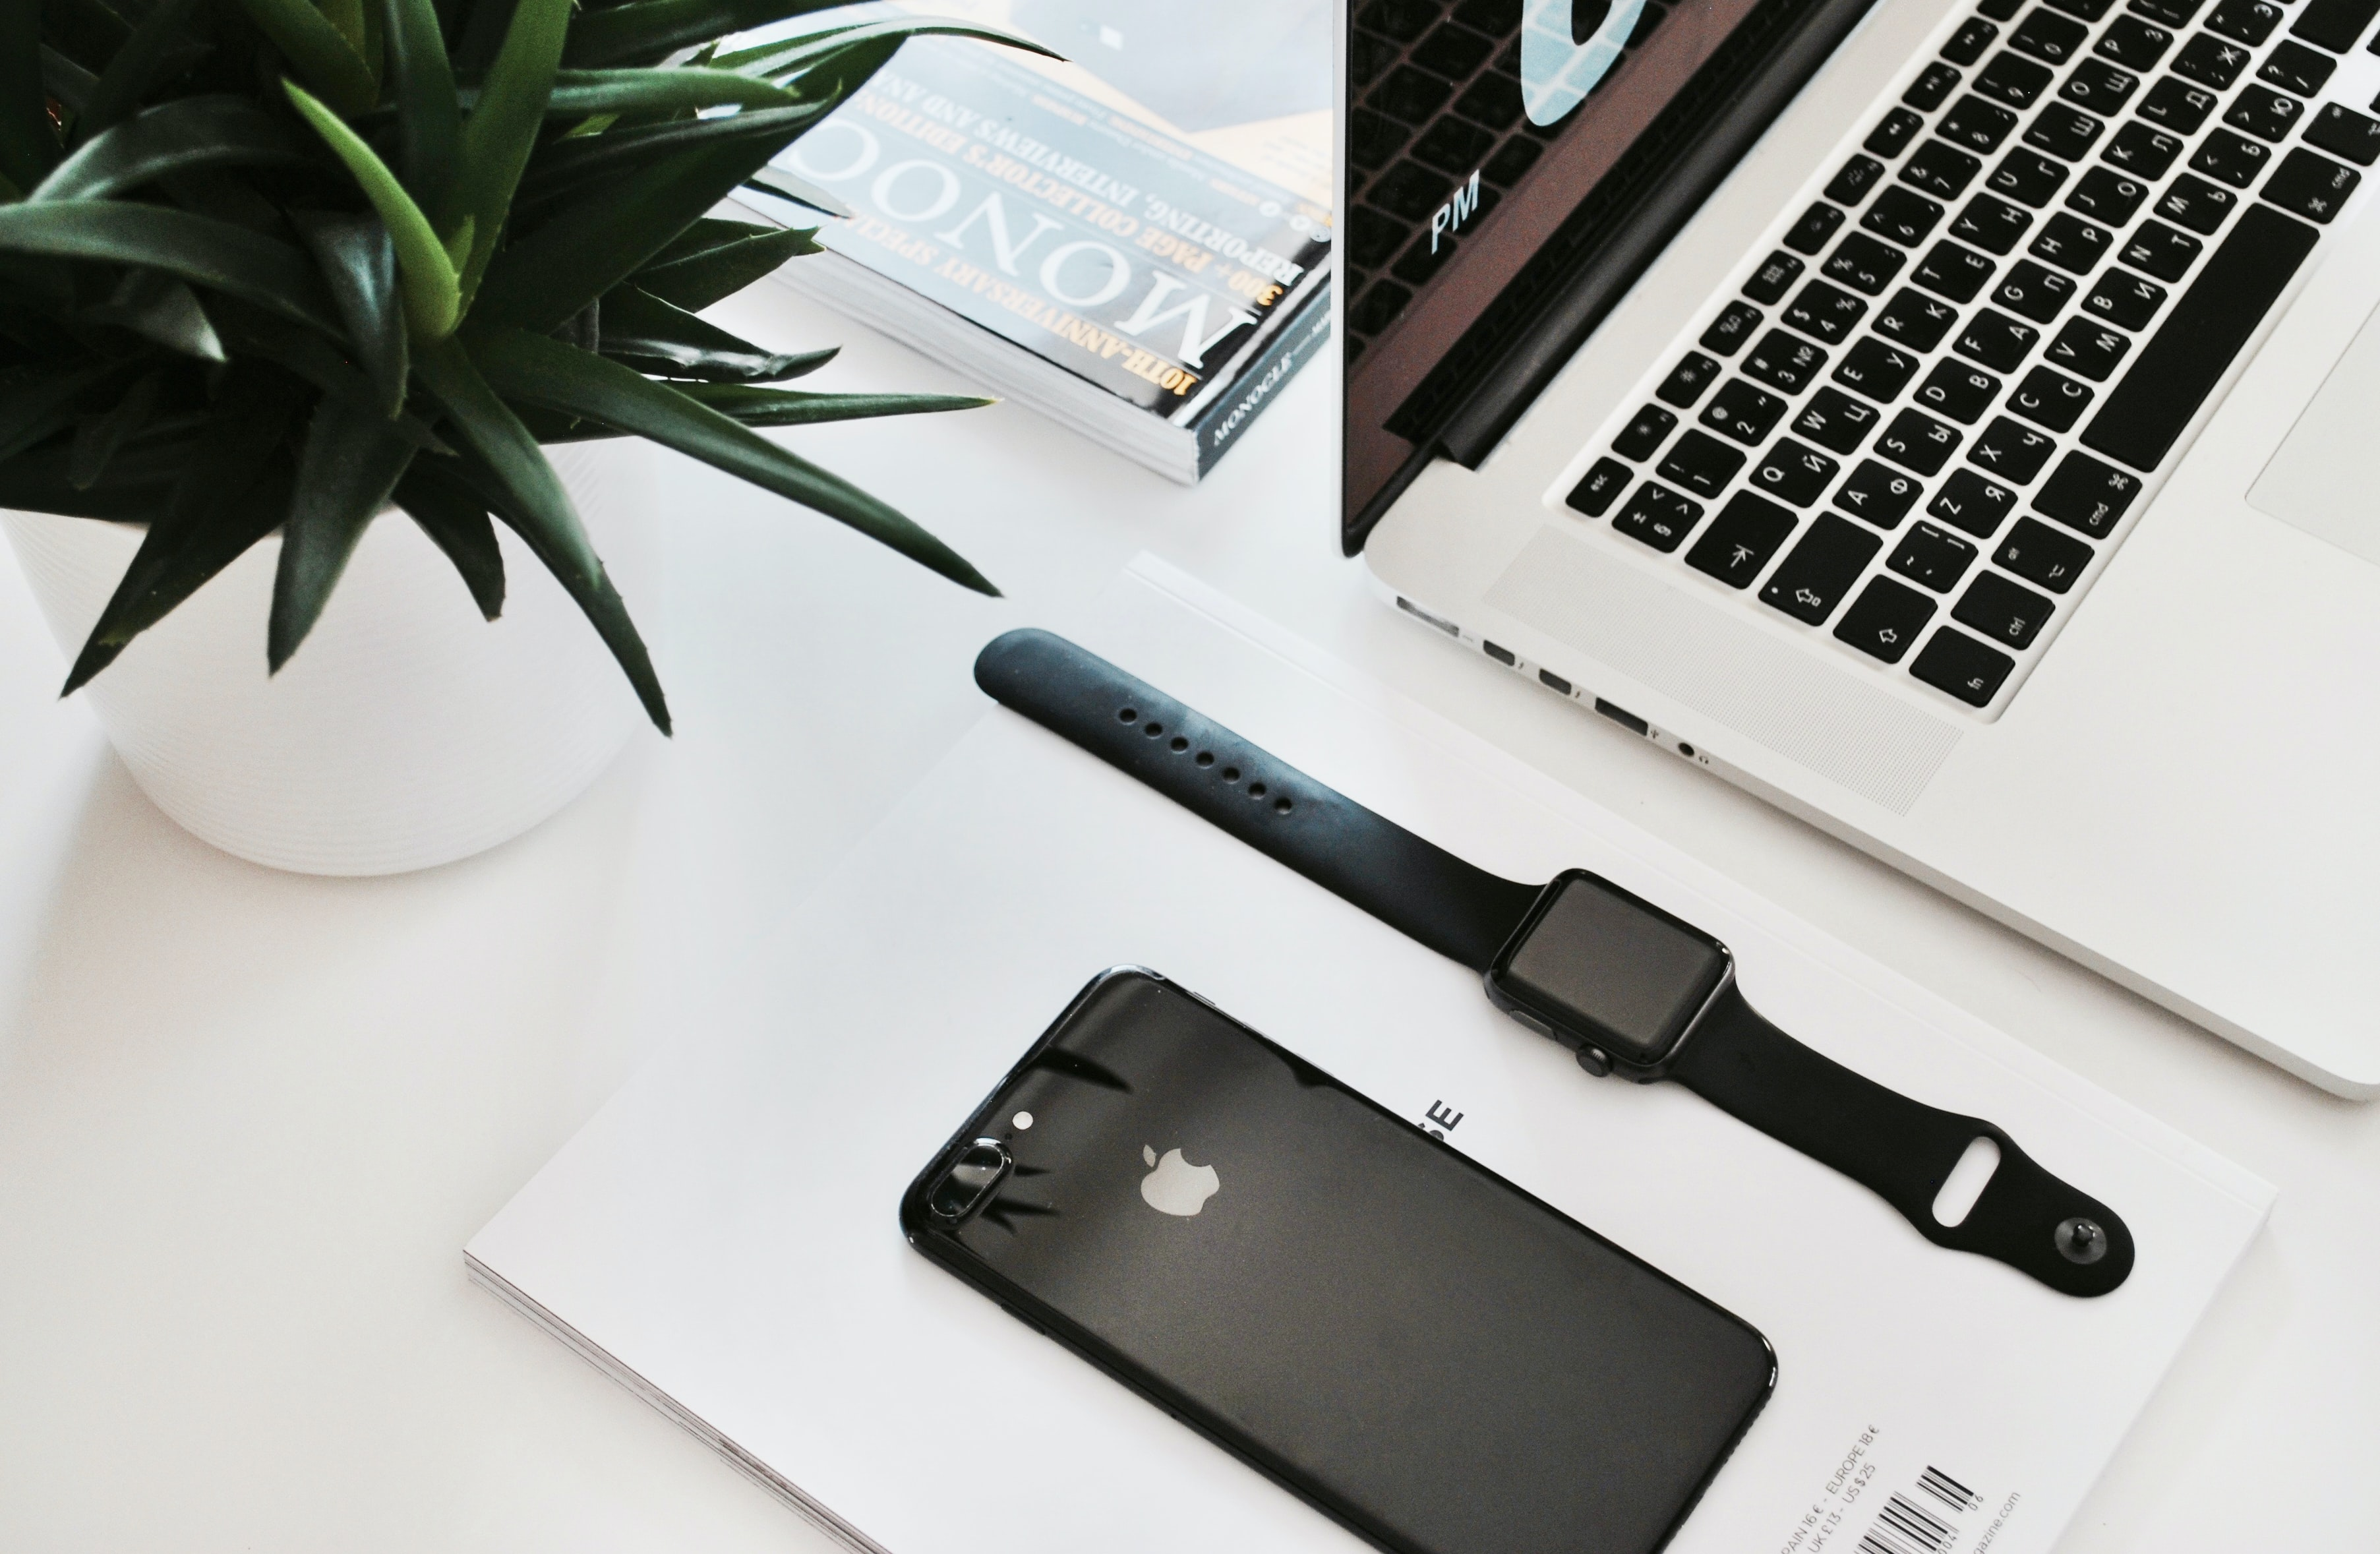 An Apple Watch and an iPhone on a desk next to a laptop